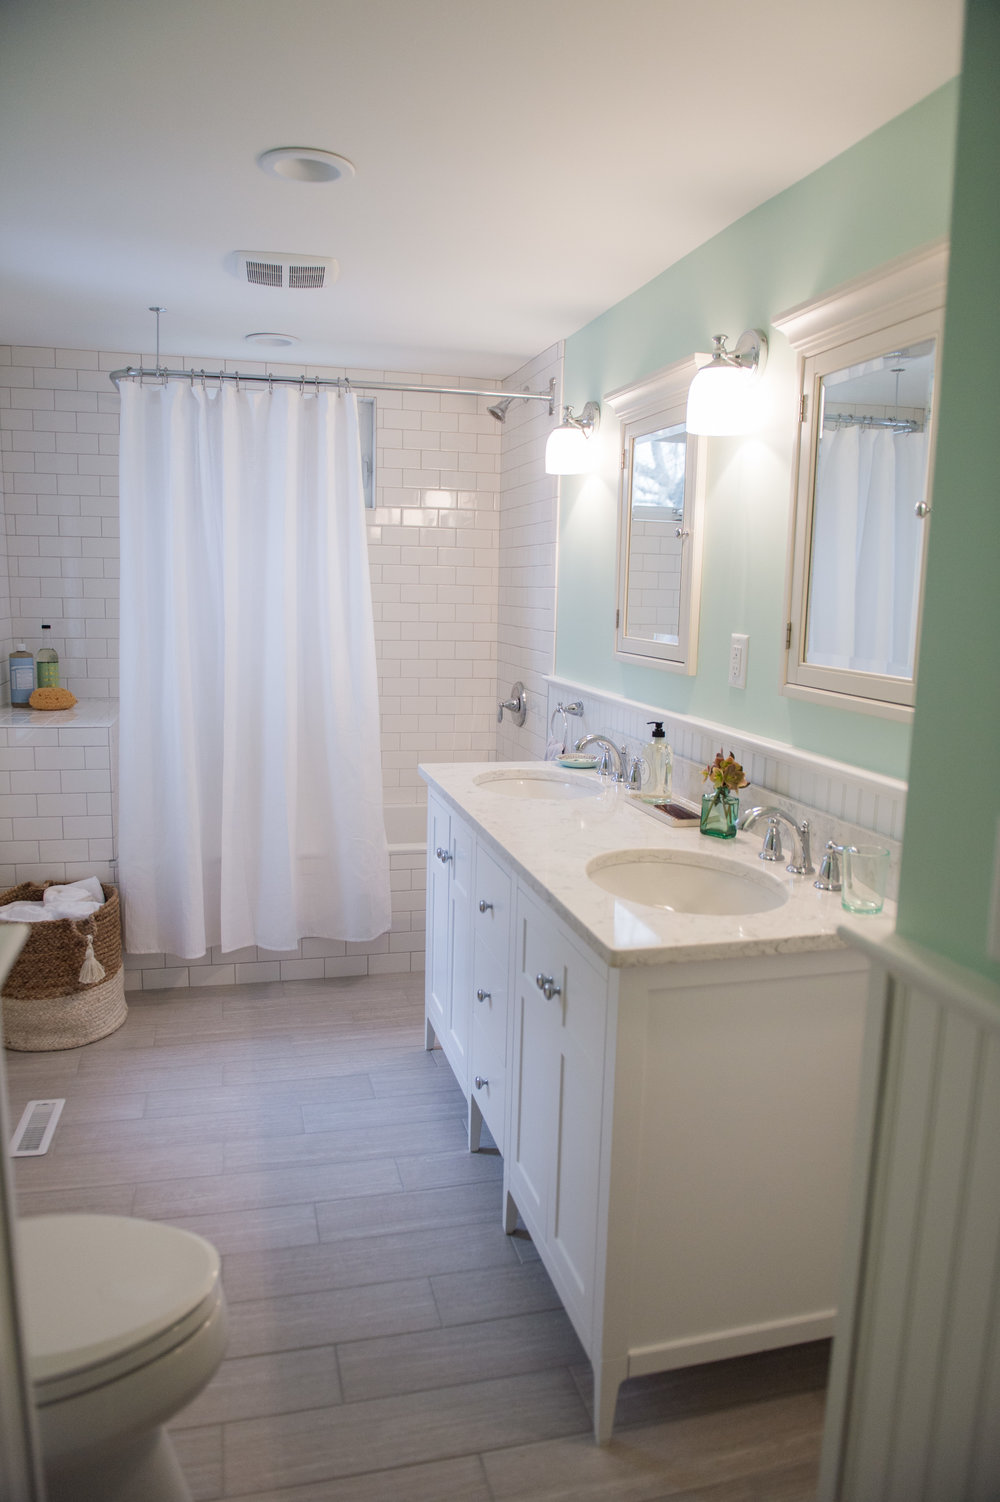 By knocking down the wall in between, our square footage doubled!  This made room for a double vanity and a soaking tub/shower combo.  A classic New England aesthetic with some modern touches was achieved through the finish and fixture selection.  And that green...so pretty and calming!